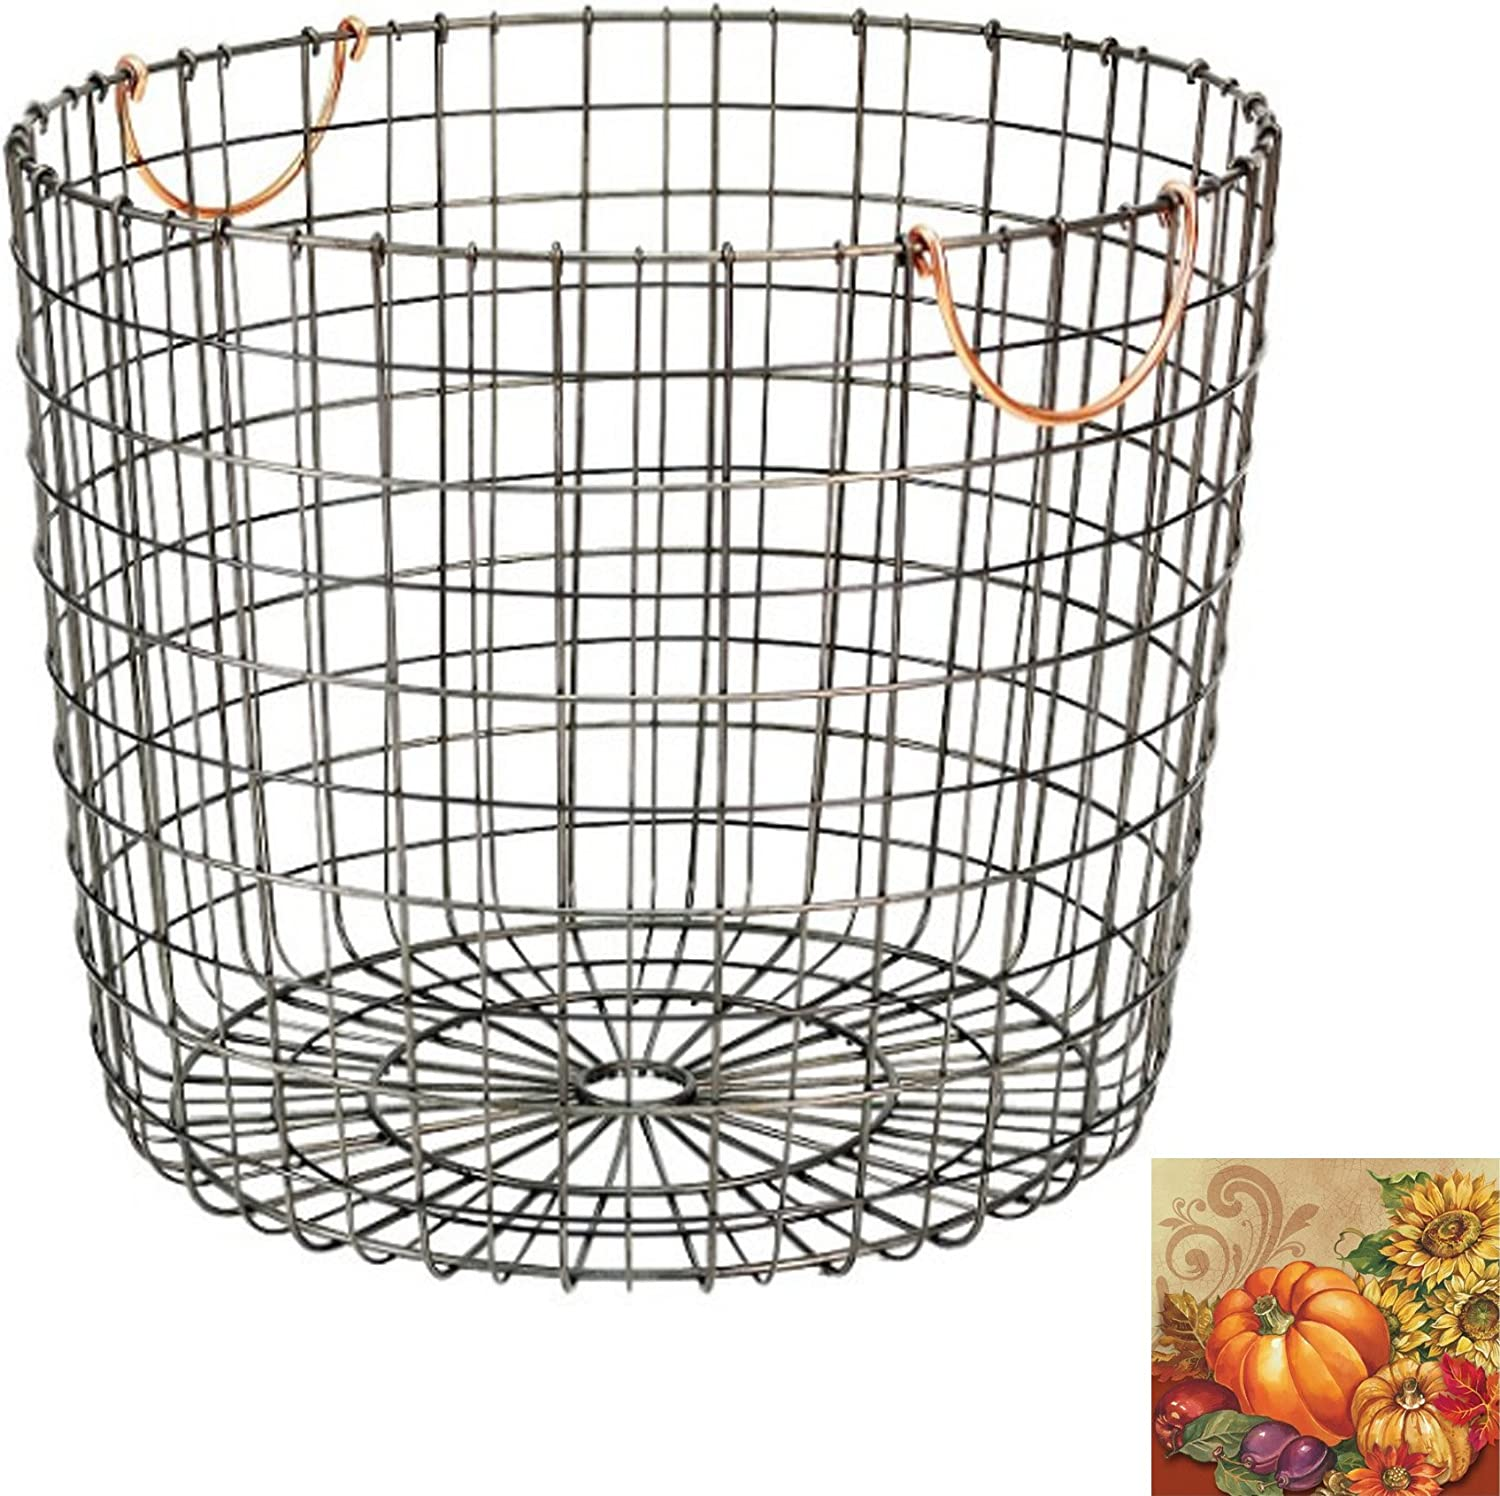 Antique Pewter Basket with Copper Handles - Extra Large Round